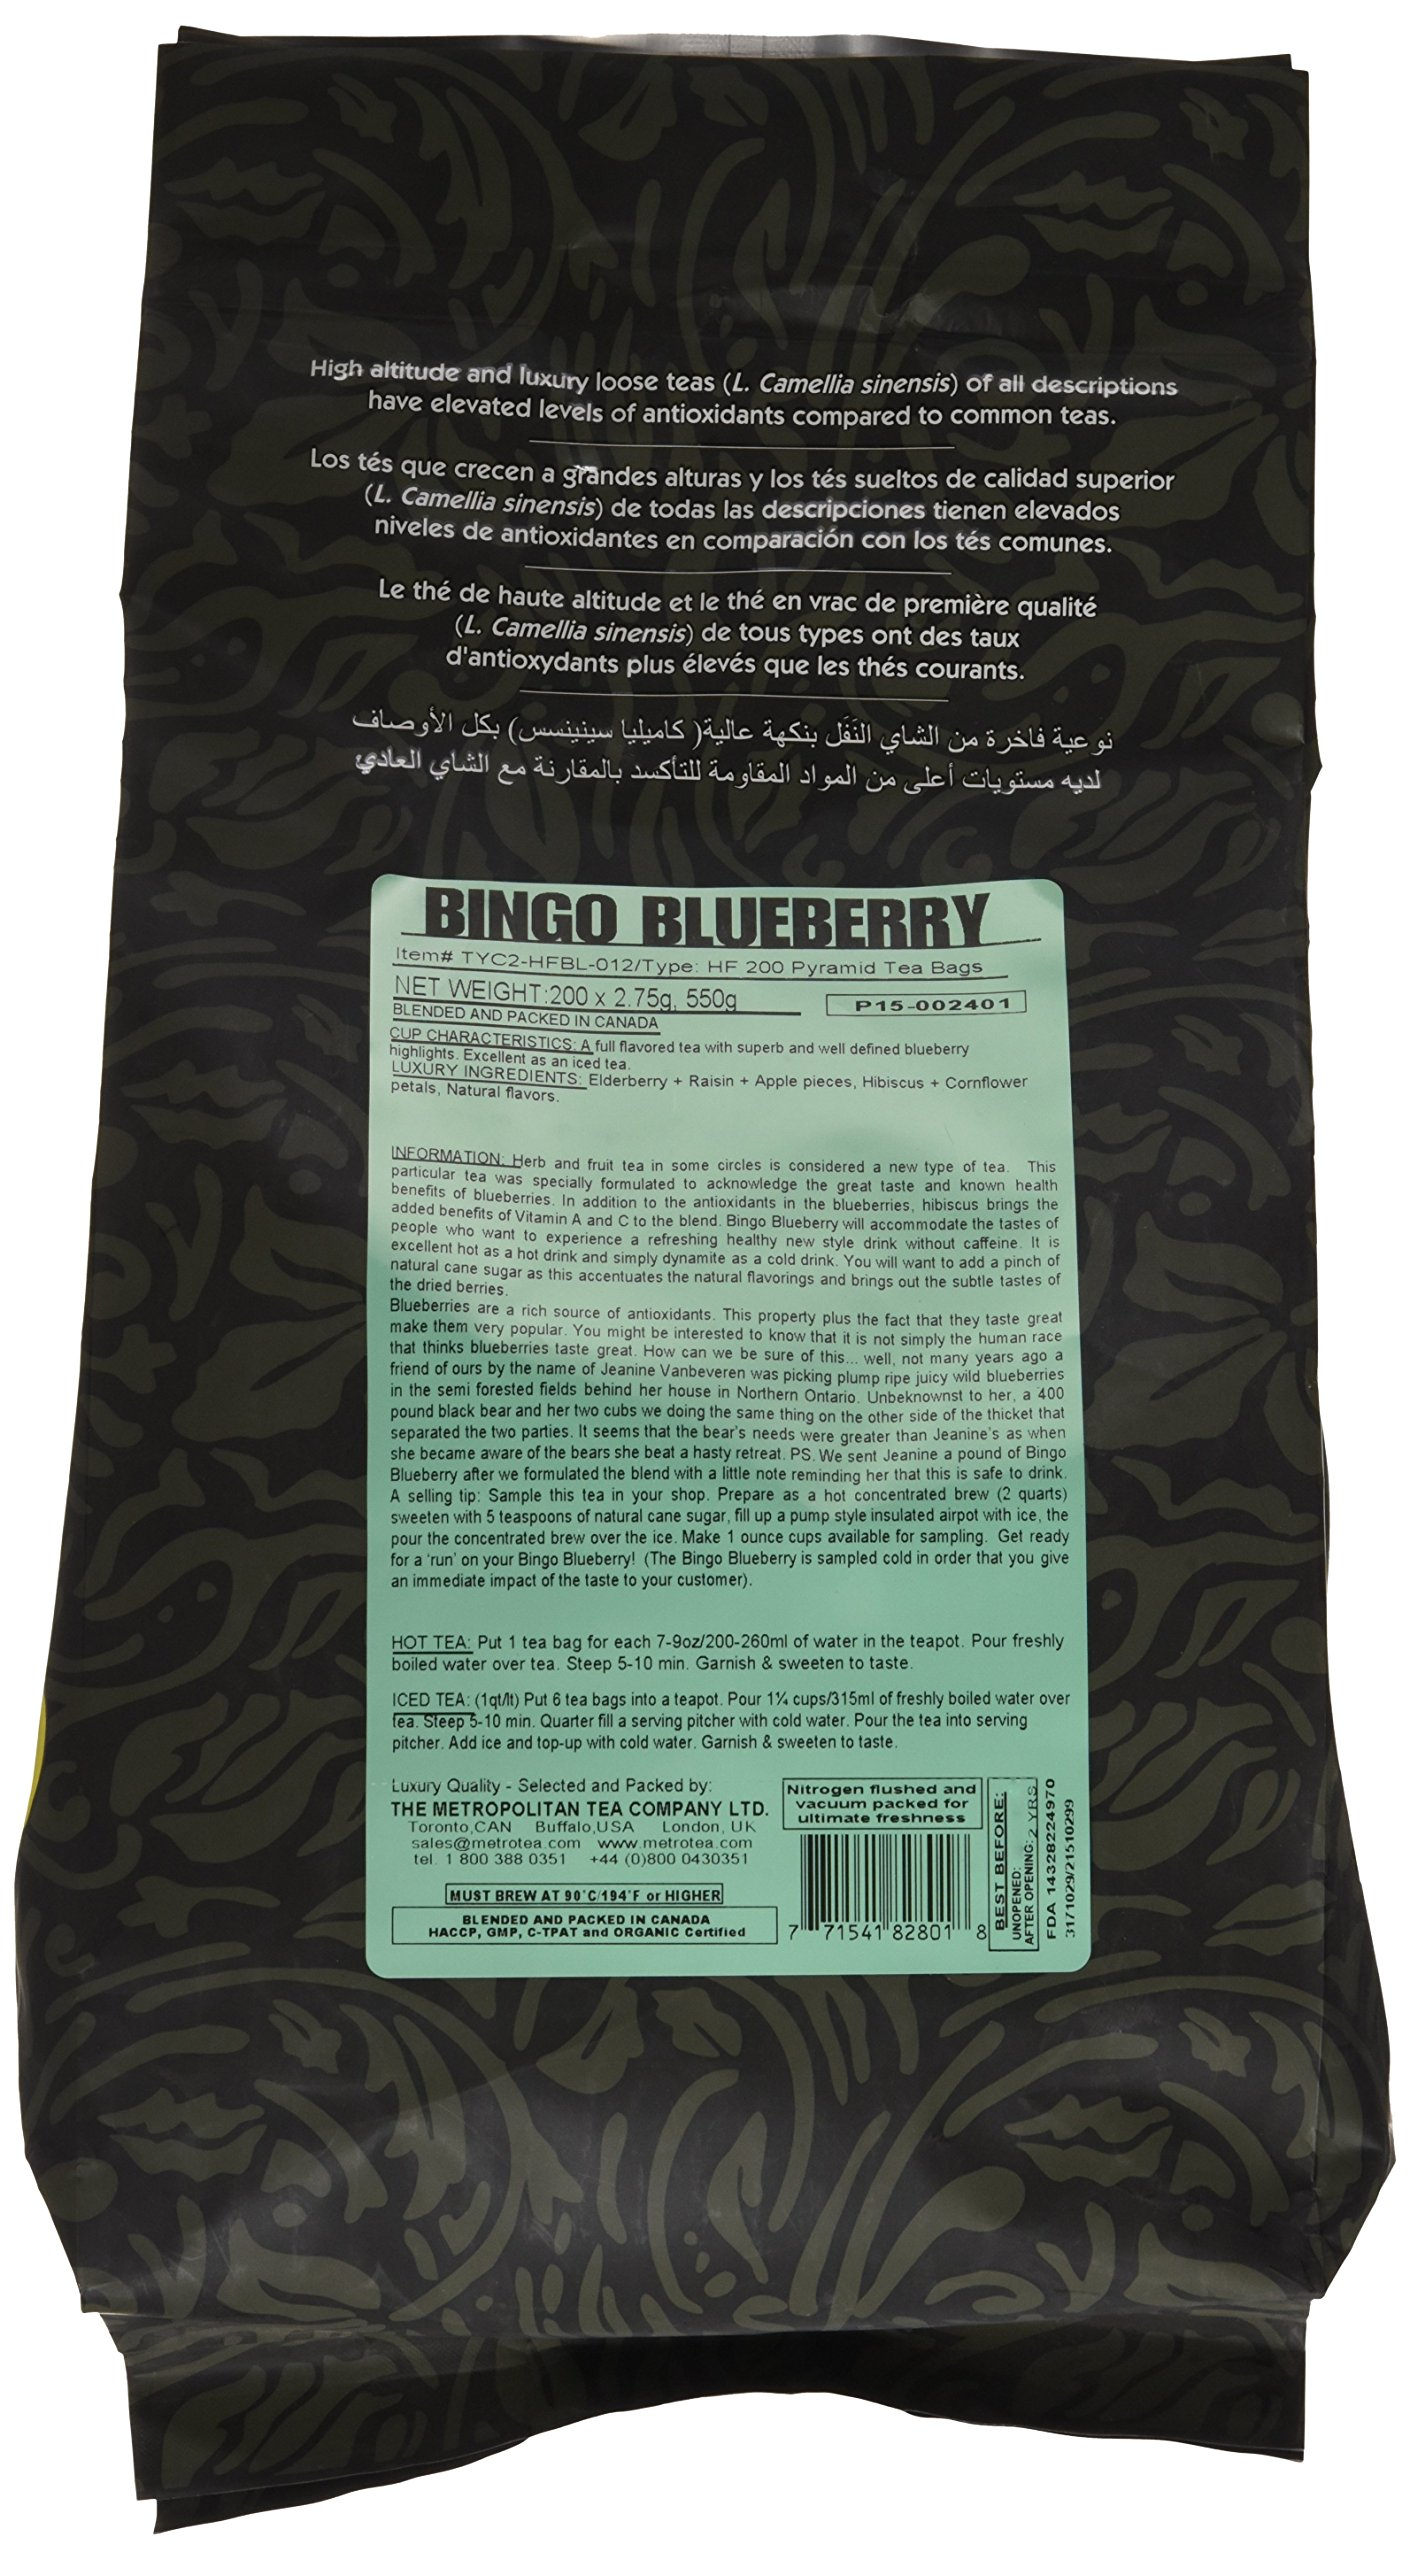 Metropolitan Tea 200 Count Pyramid Shaped Teabags, Bingo Blueberry by Metropolitan Tea